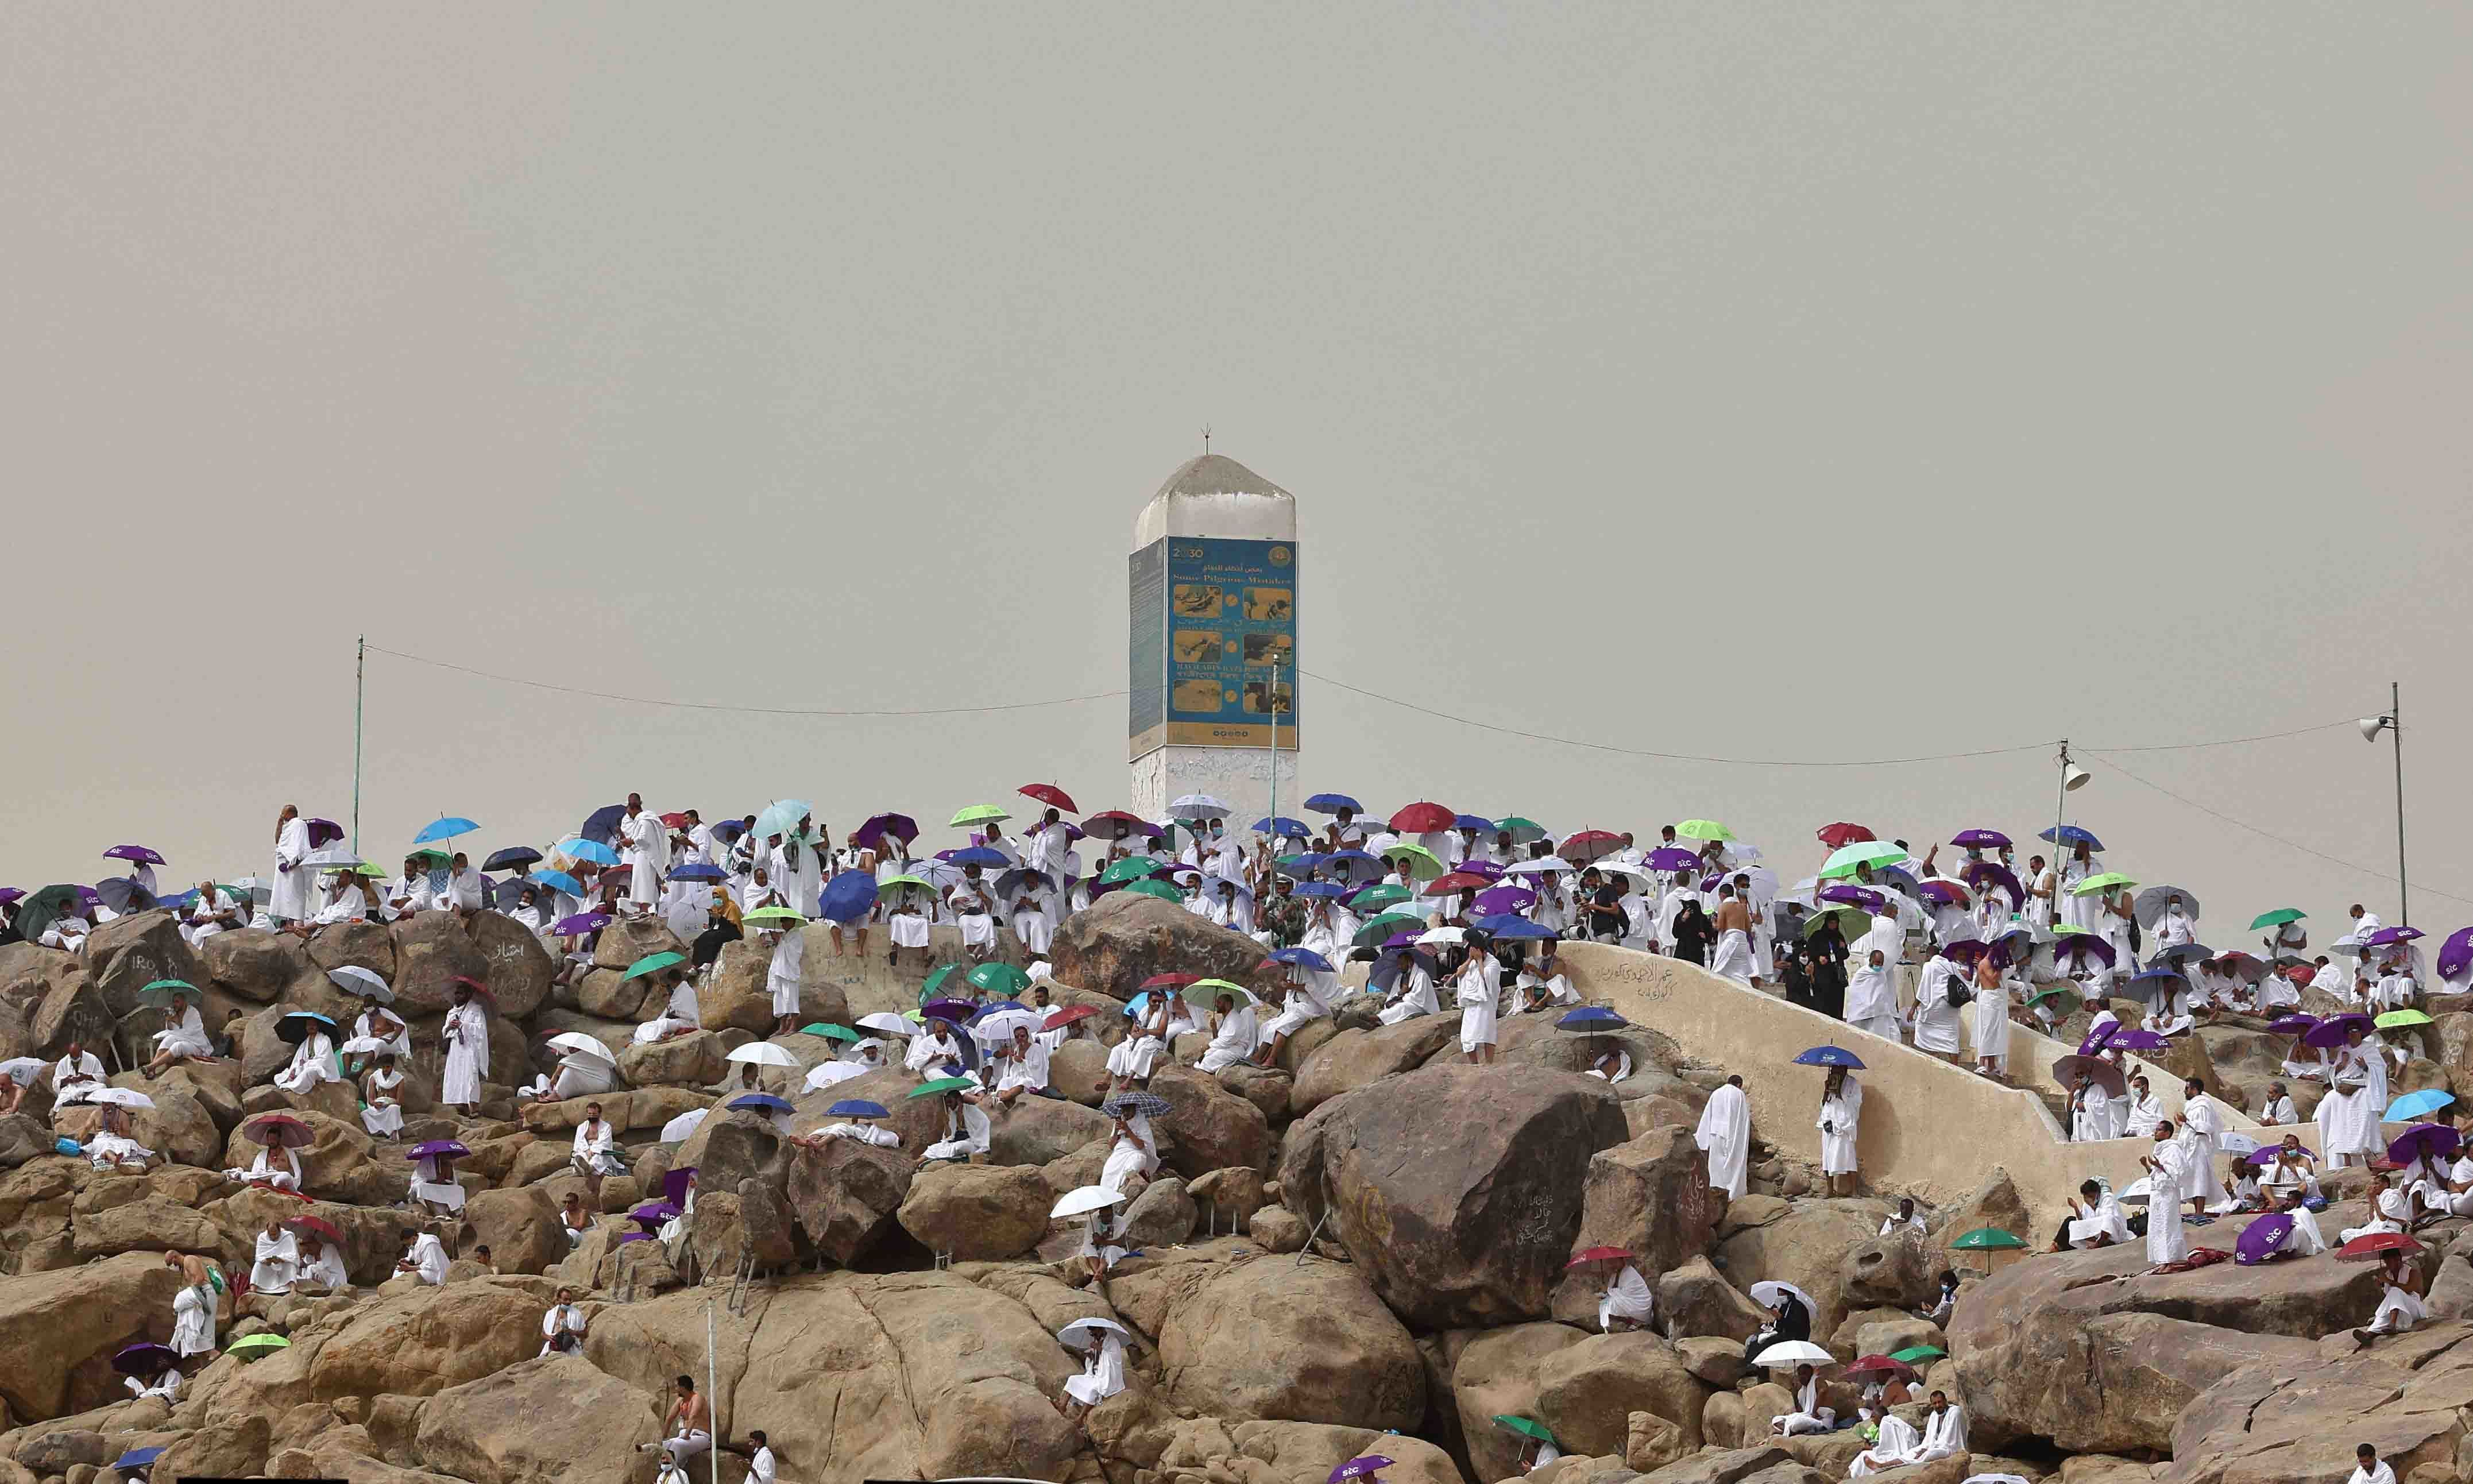 Muslim pilgrims gather around Mount Arafat, southeast of the holy city of Makkah, during the climax of the Haj pilgrimage amid the Covid-19 pandemic, on July 19. — AFP